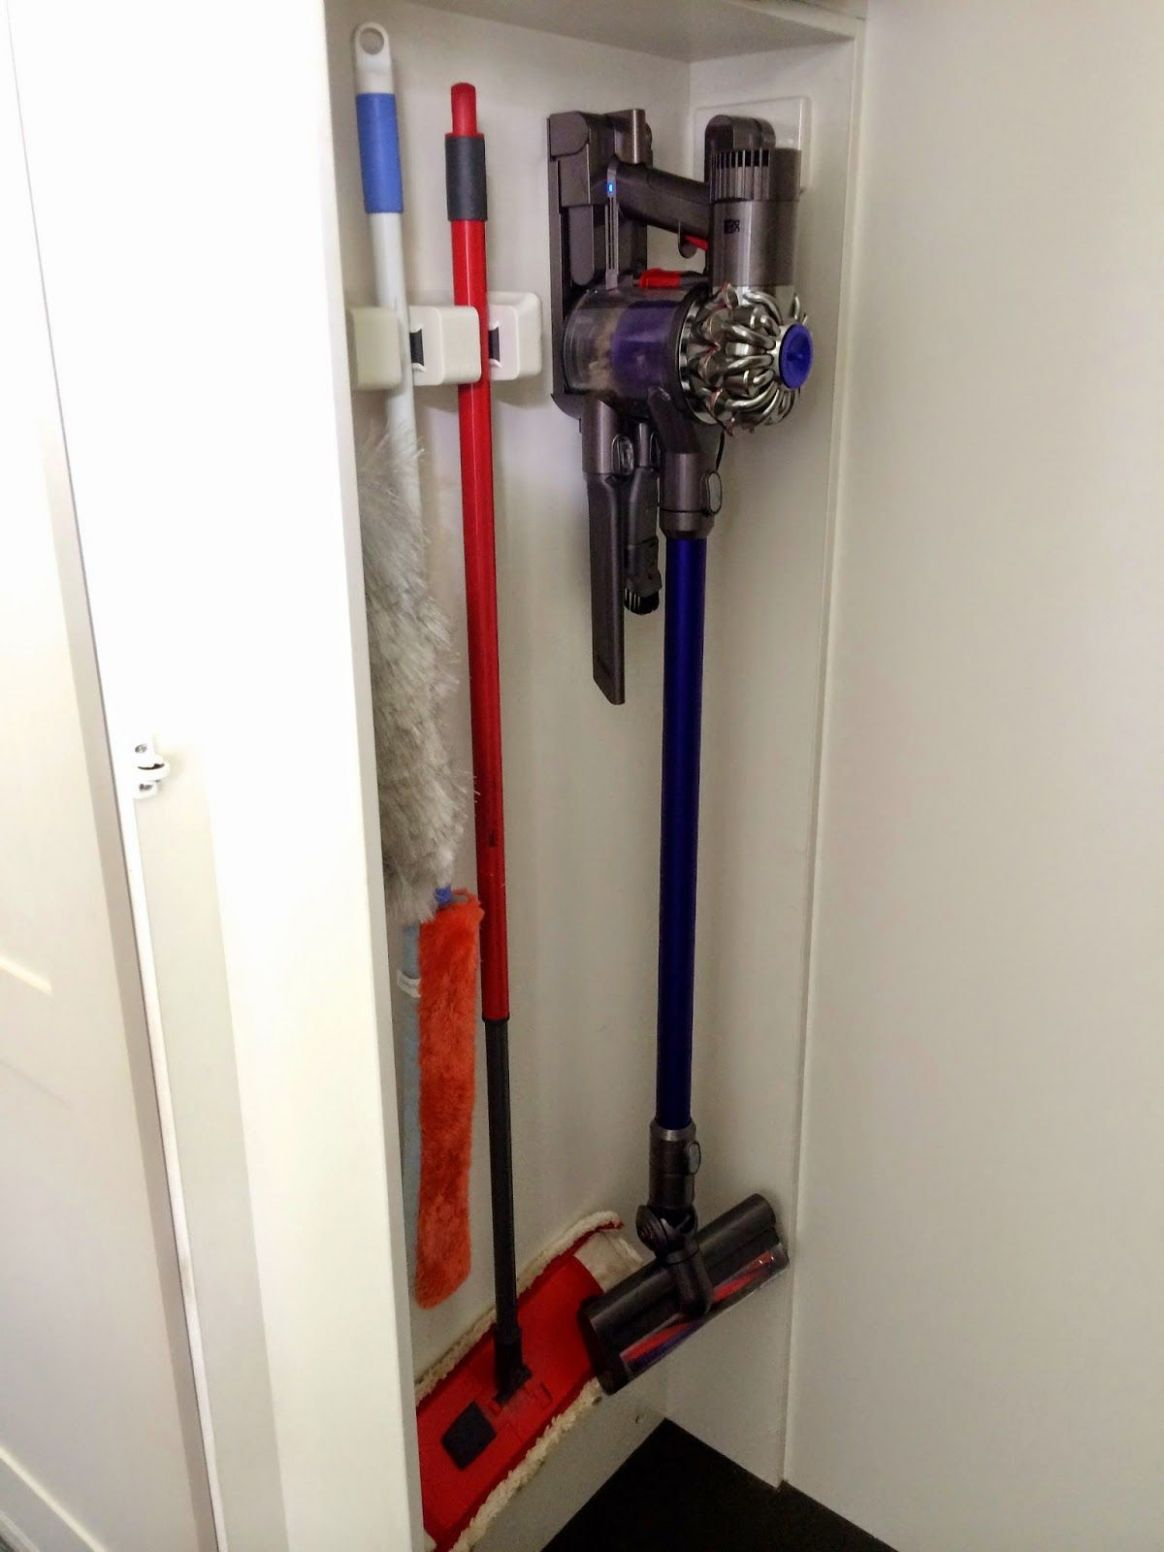 brooms, dusters & dyson storage | Laundry cupboard, Dyson cordless ..